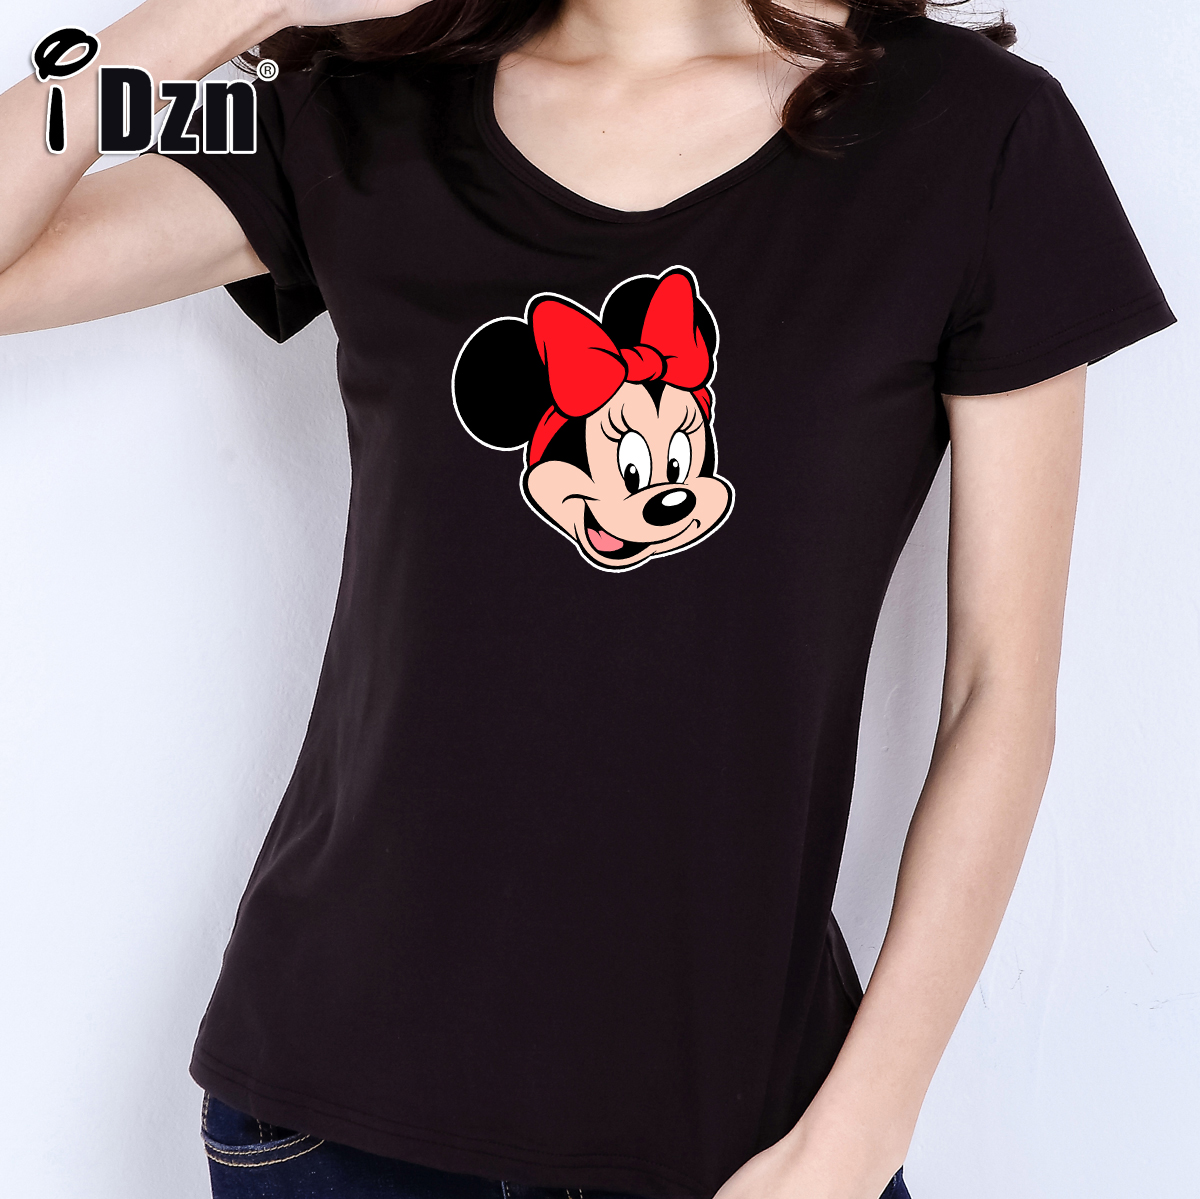 iDzn Women T shirt Cotton Casual Cute Cartoon Star Donald Daisy Duck Mouse Head Goofy Pluto Pet Dog Girls short sleeve Tees Tops